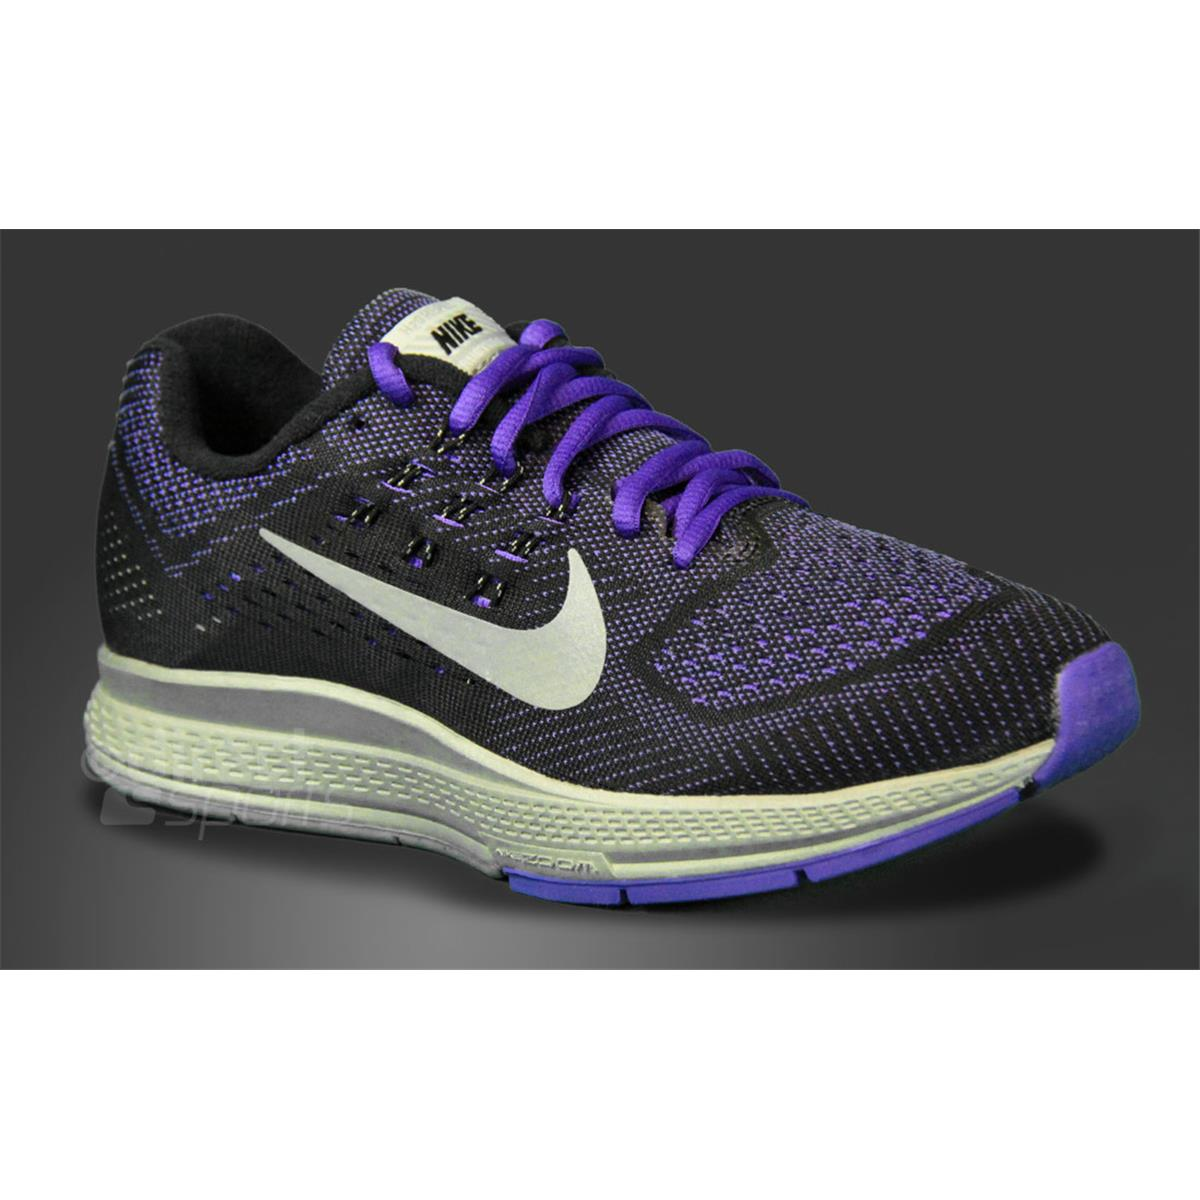 ... Flash Shoes - HO14 mens nike zoom structure 18 purple red ... 7b156e00407f